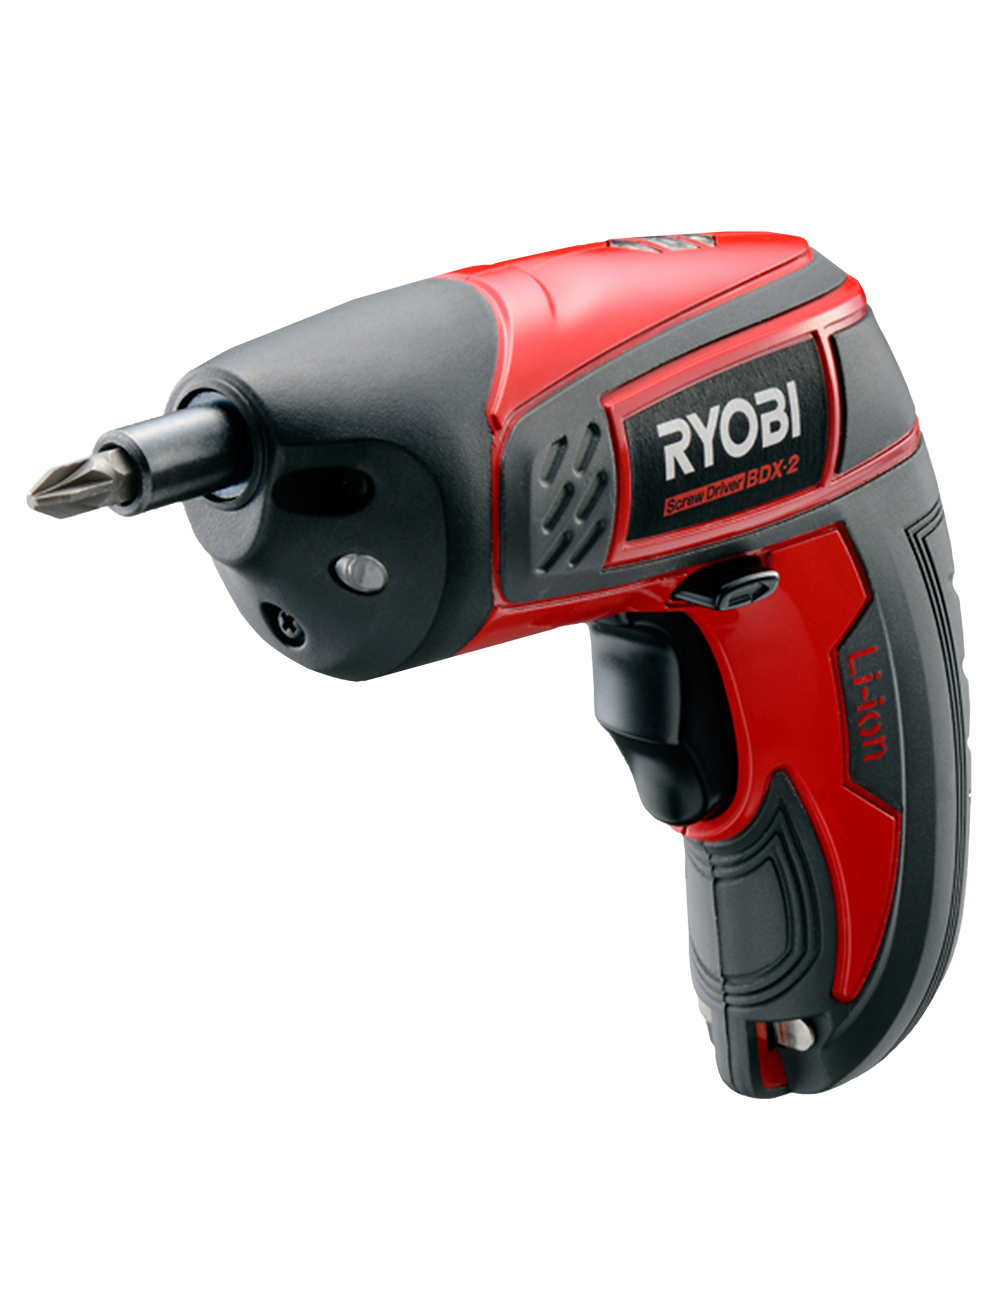 A red screw driver that has a Ryobi Logo on it